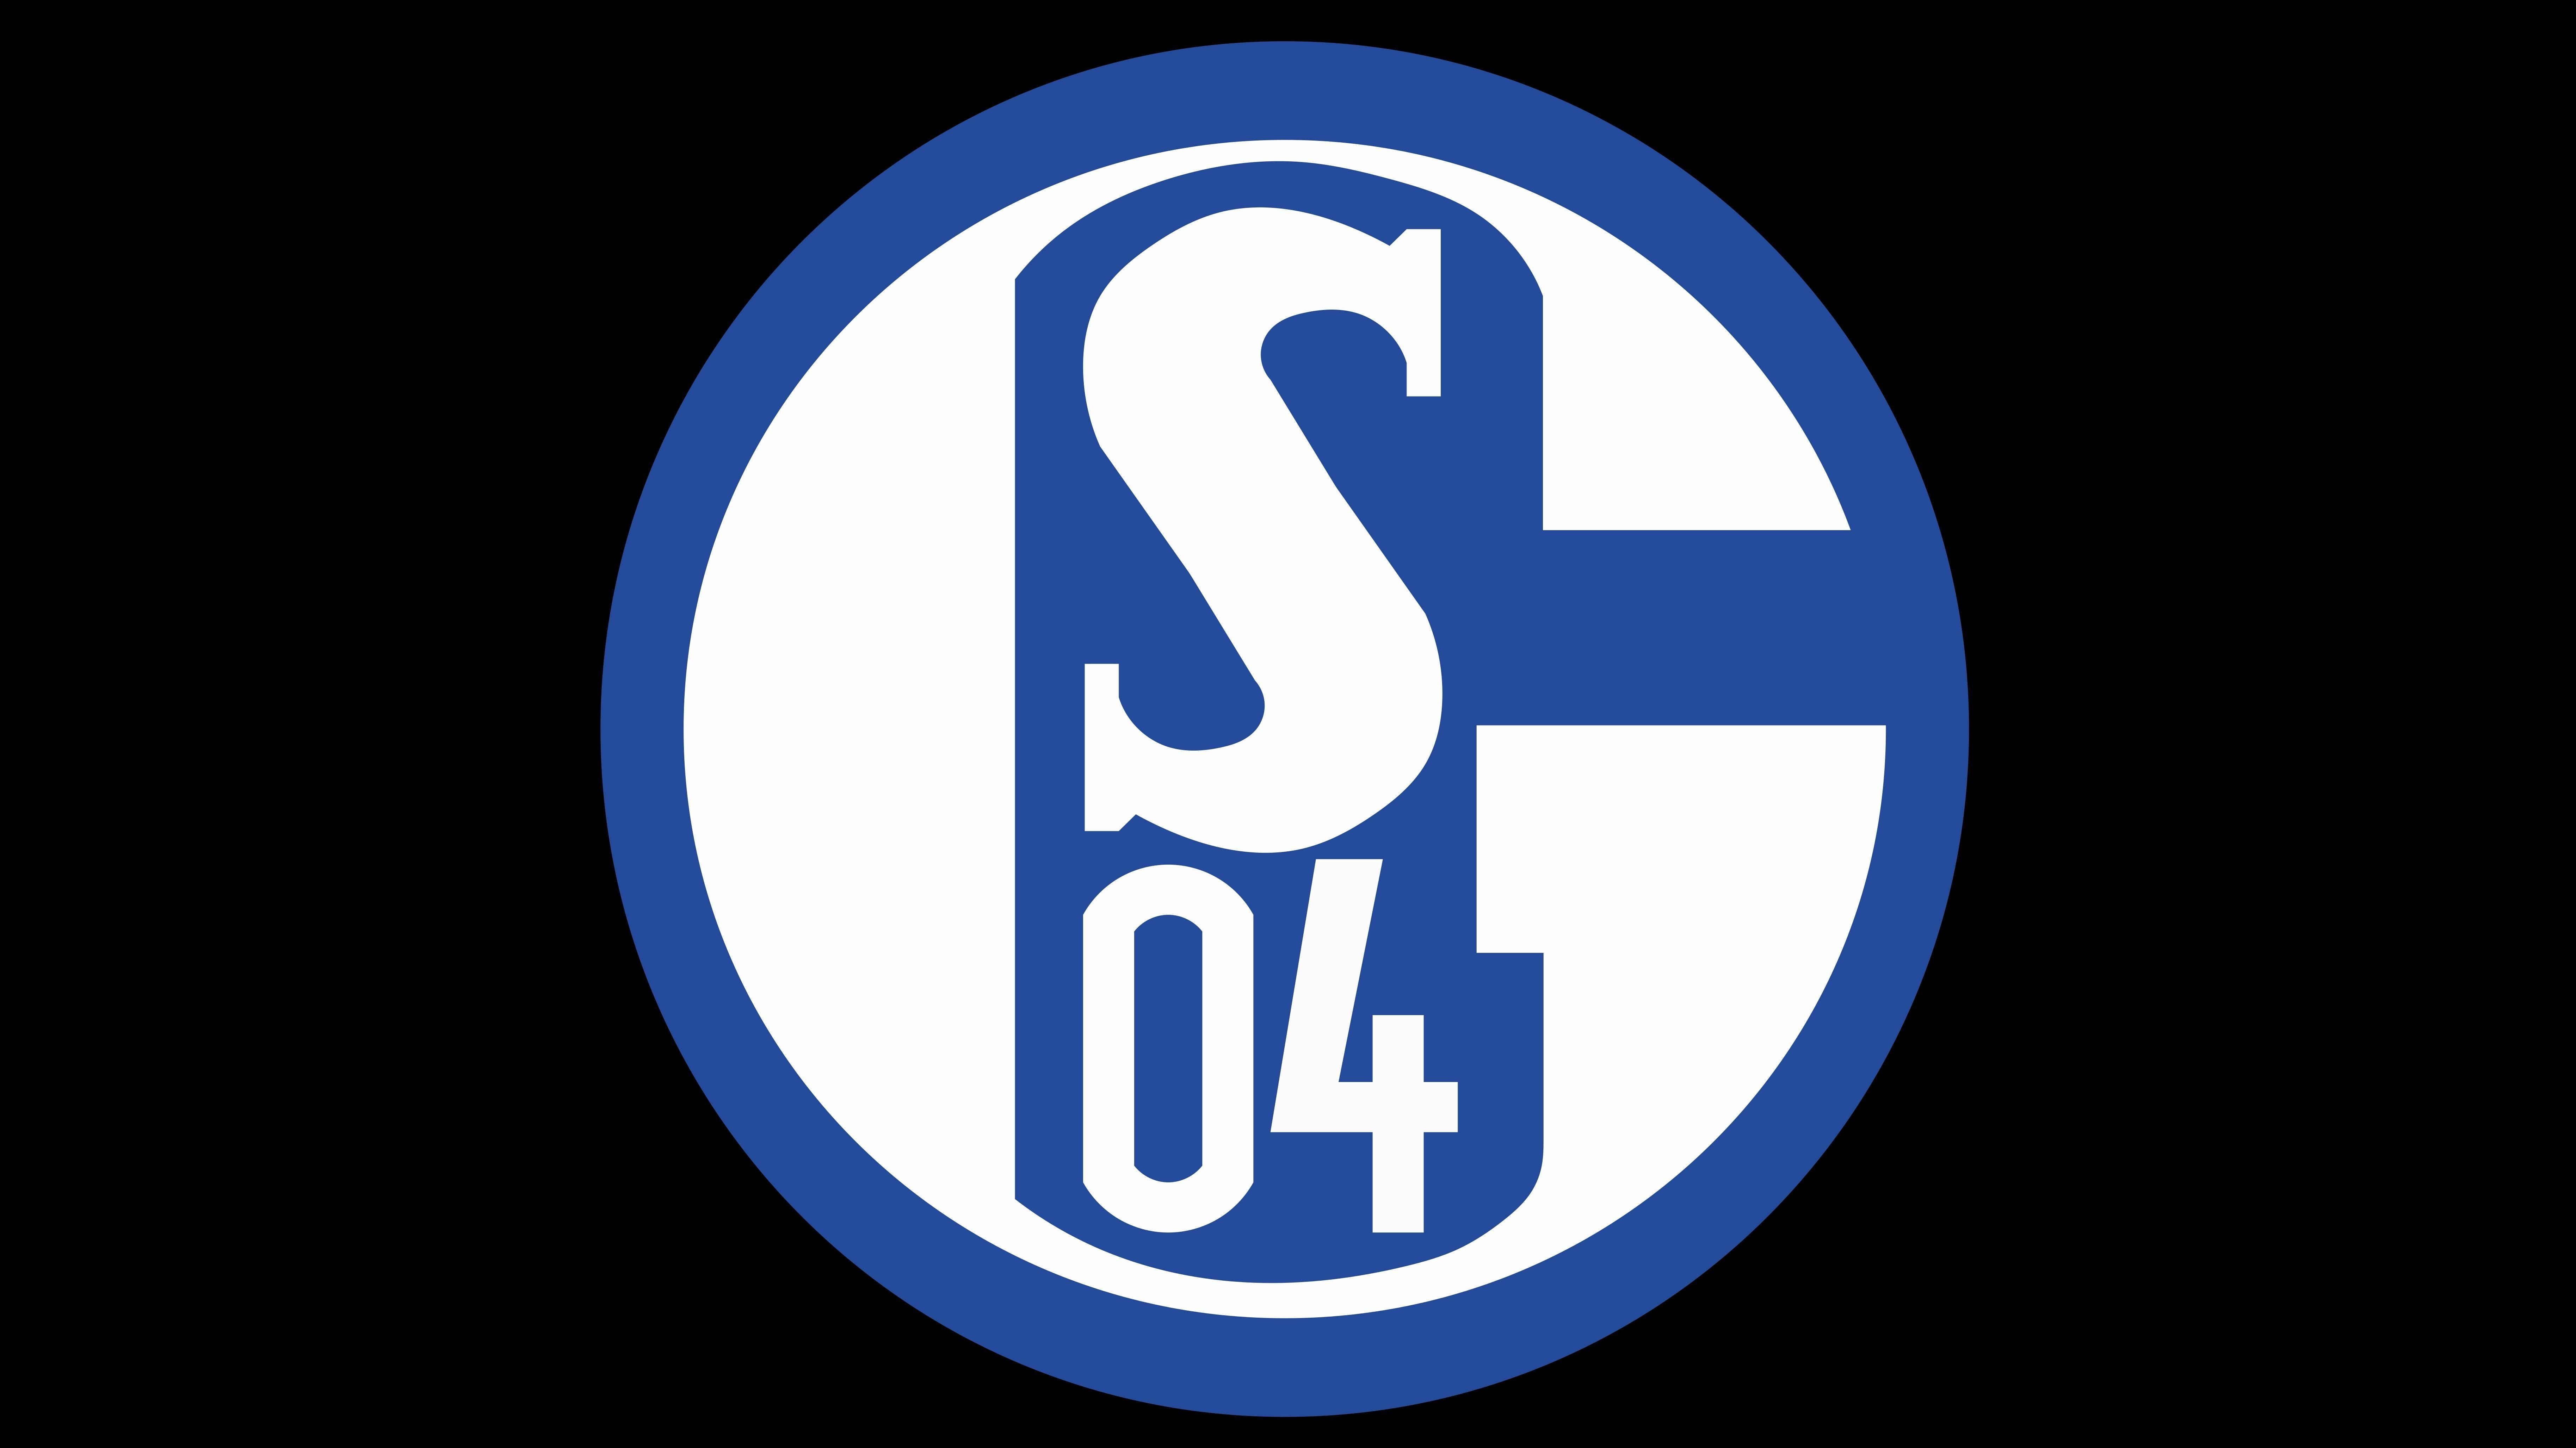 1 FC Schalke 04 HD Wallpapers